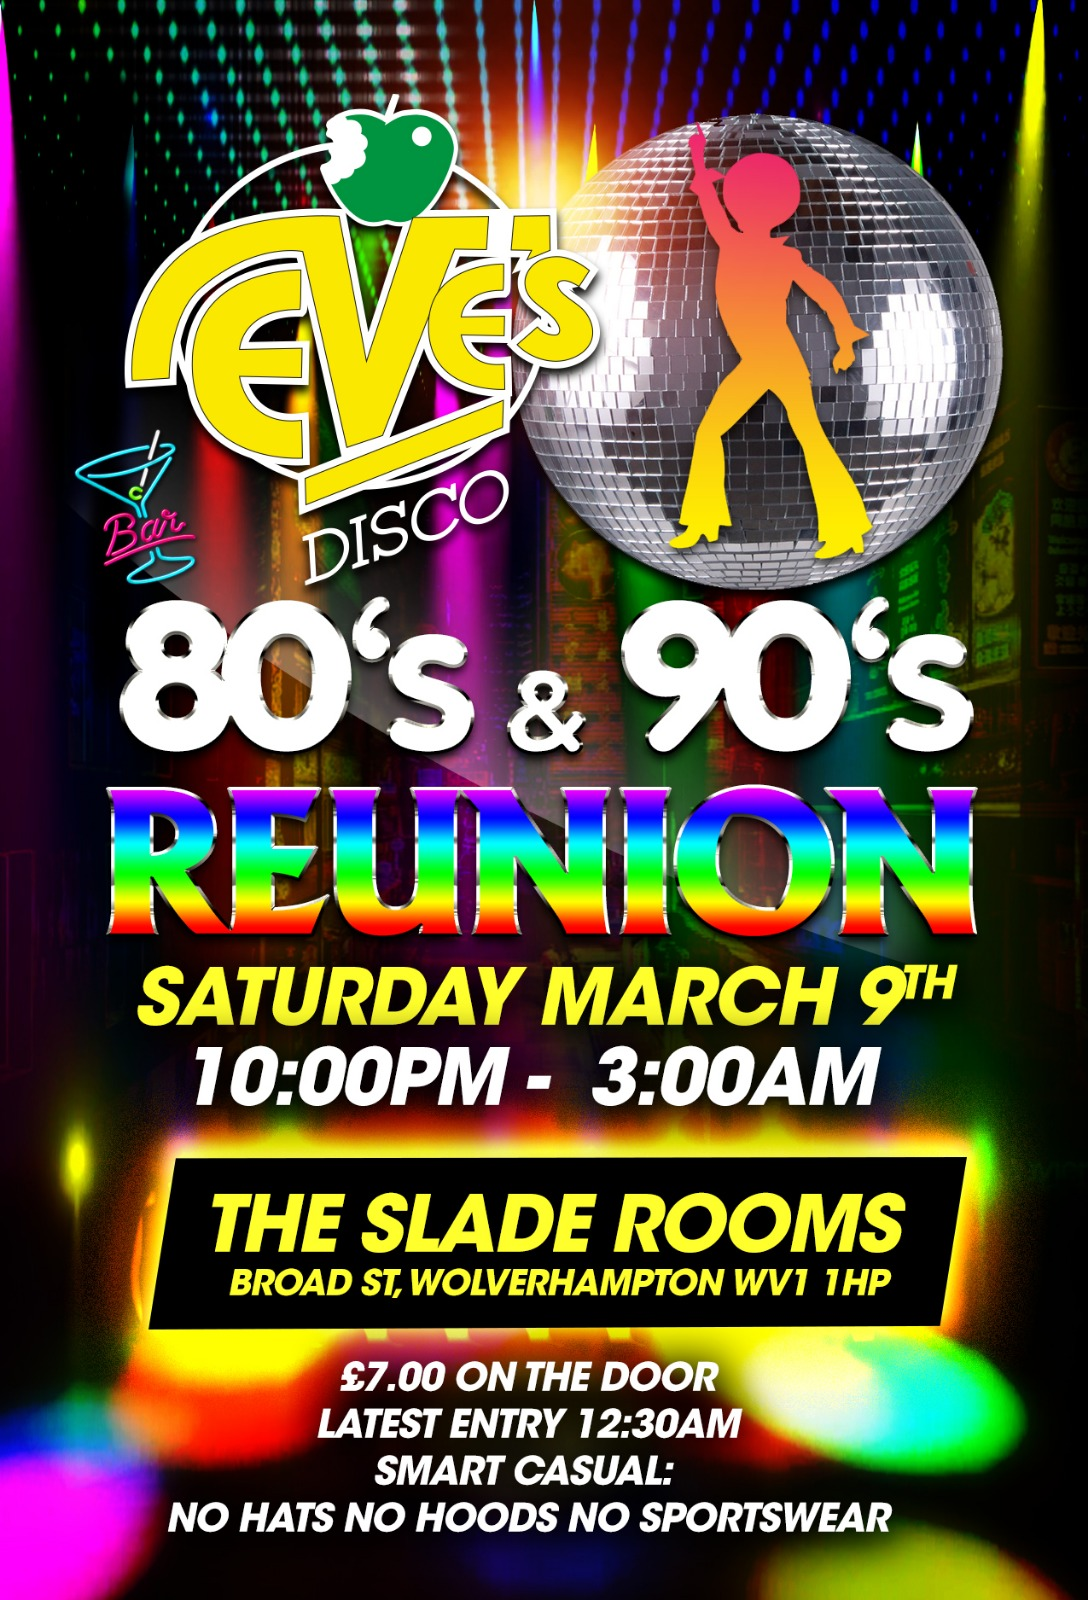 Image for - Eve's 80's & 90's Reunion at The Slade Rooms